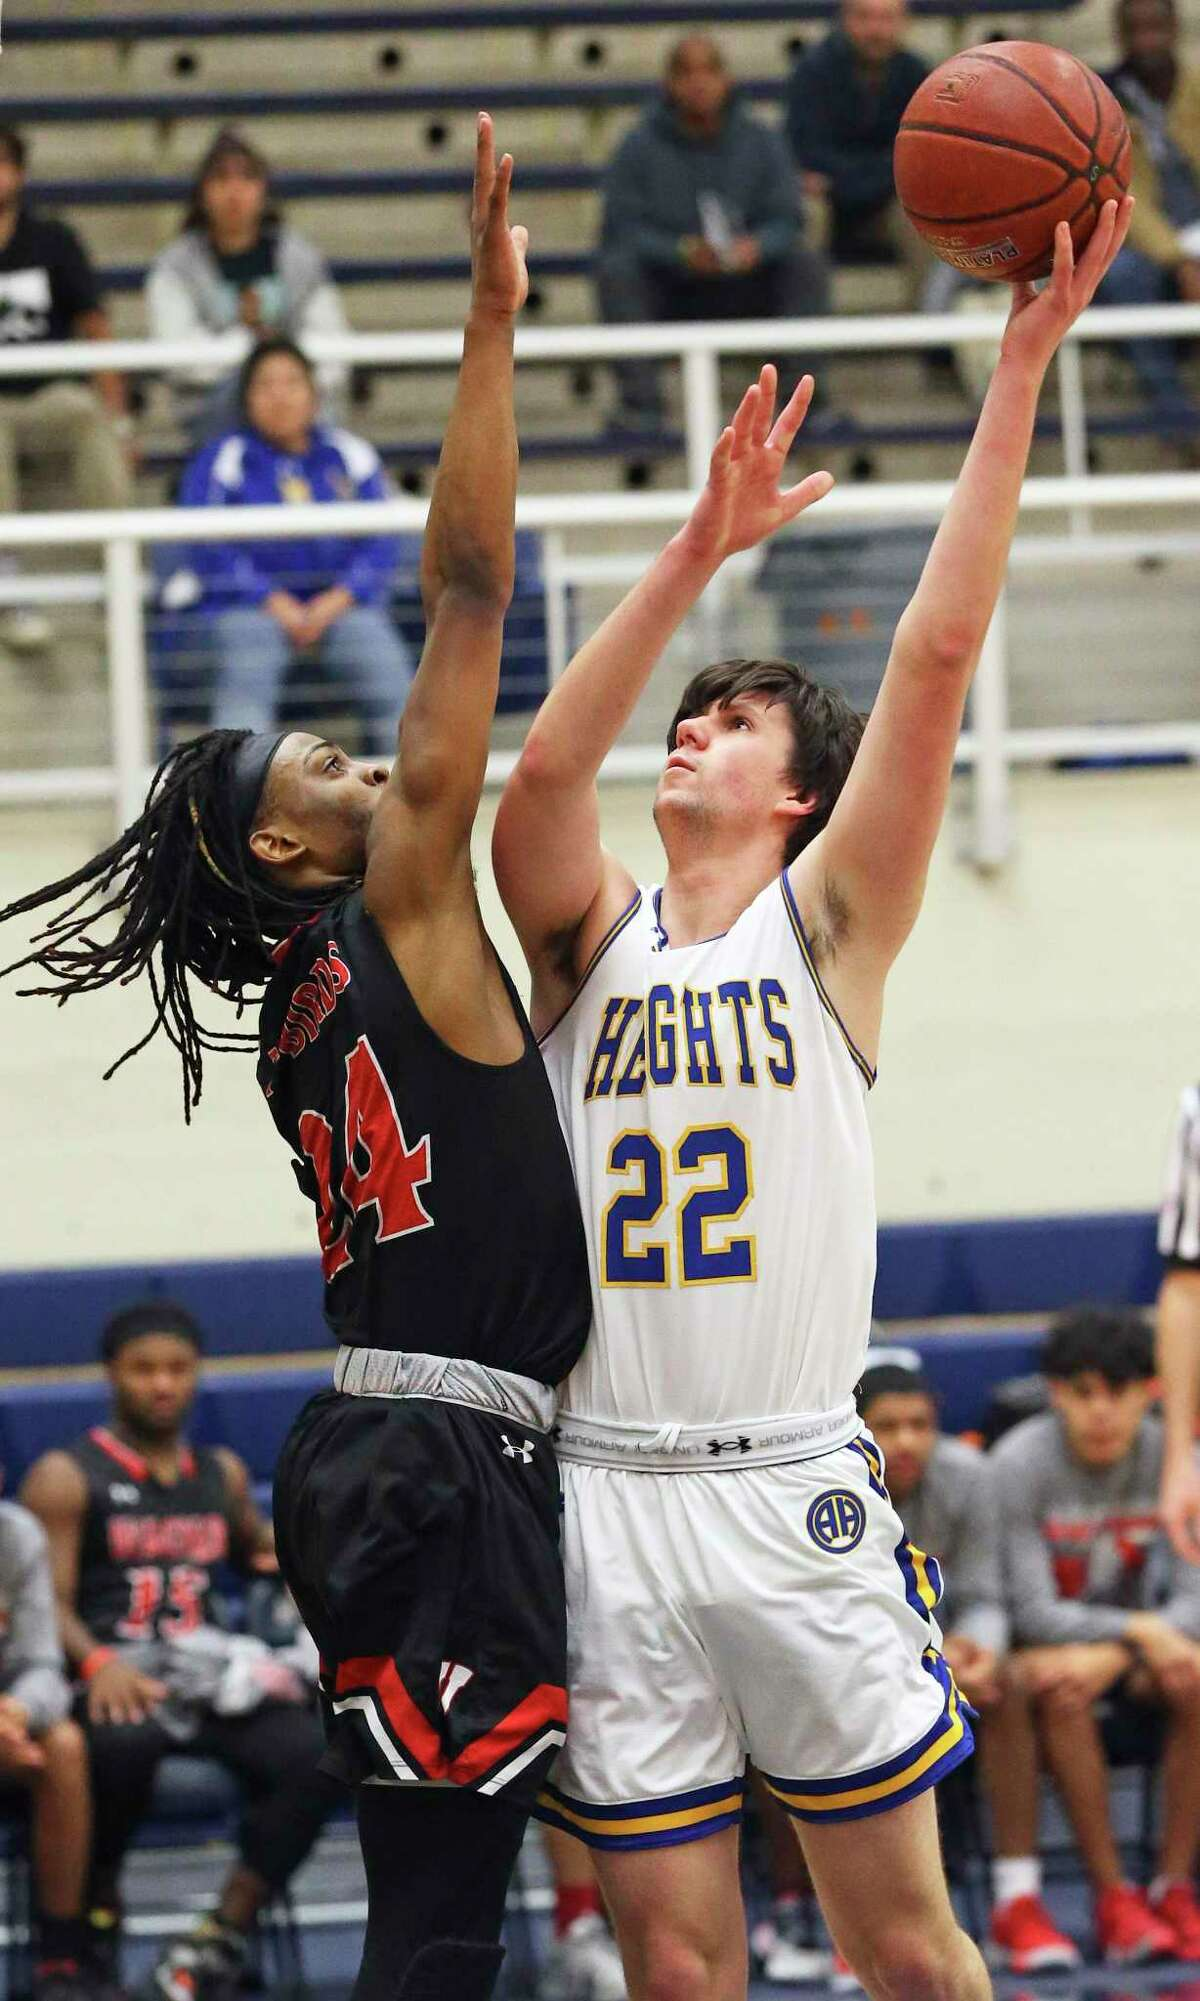 Mules forward Westin Voss stretches for a shot against Journee Phillips as Wagner plays Alamo Heights in boys basketball playoff action at Taylor Field House on Feb. 28, 2020.